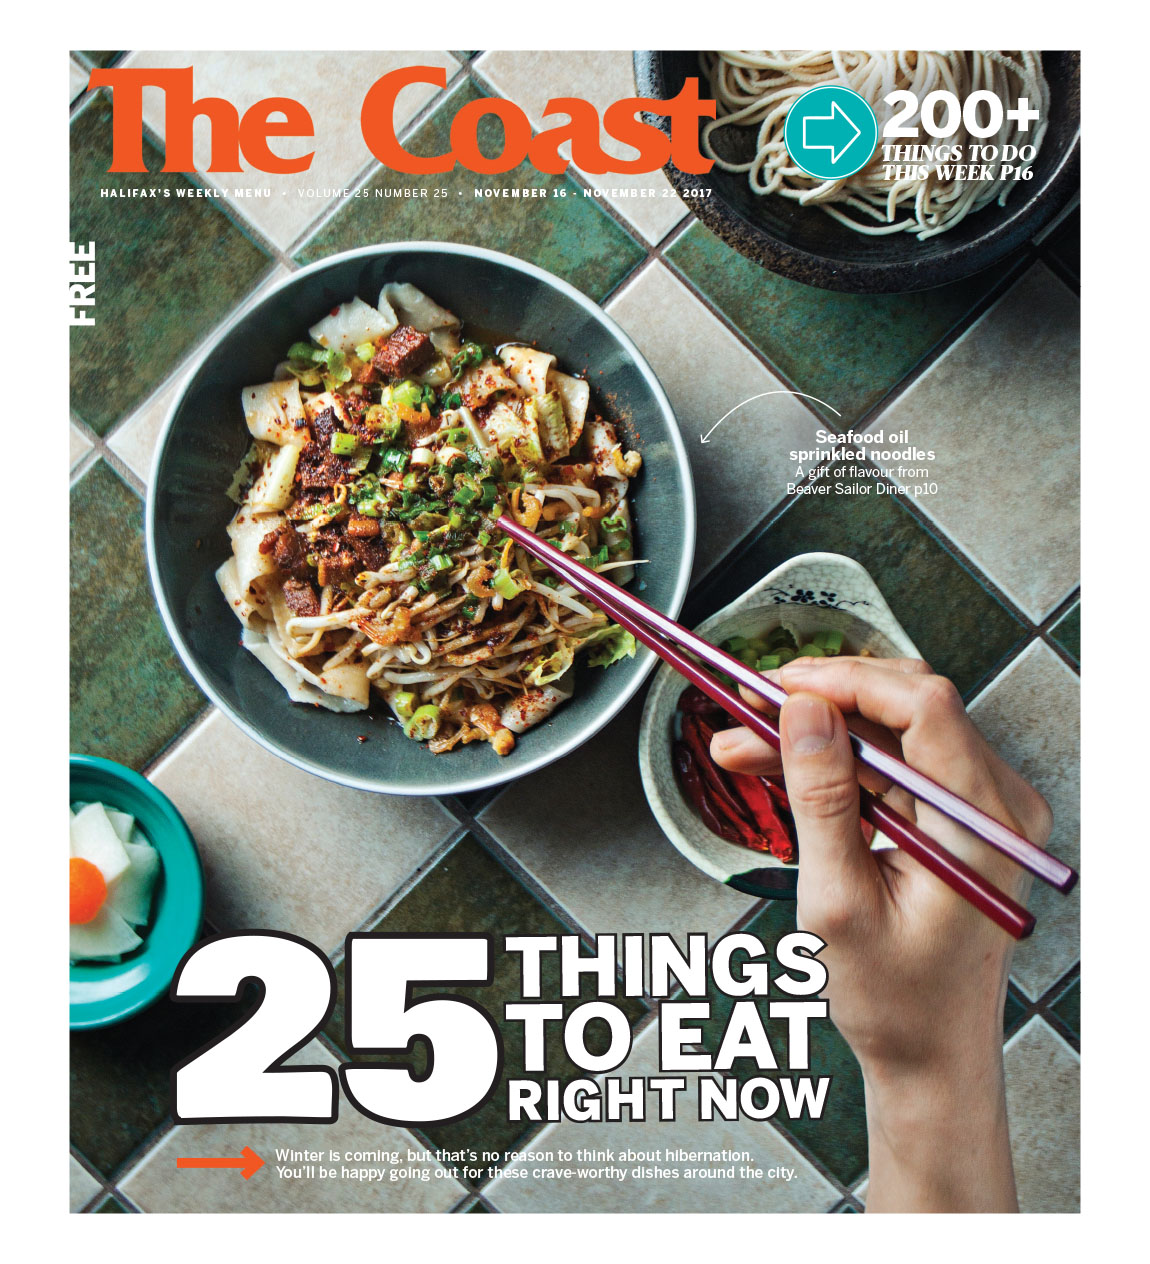 25 Things to Eat Right Now